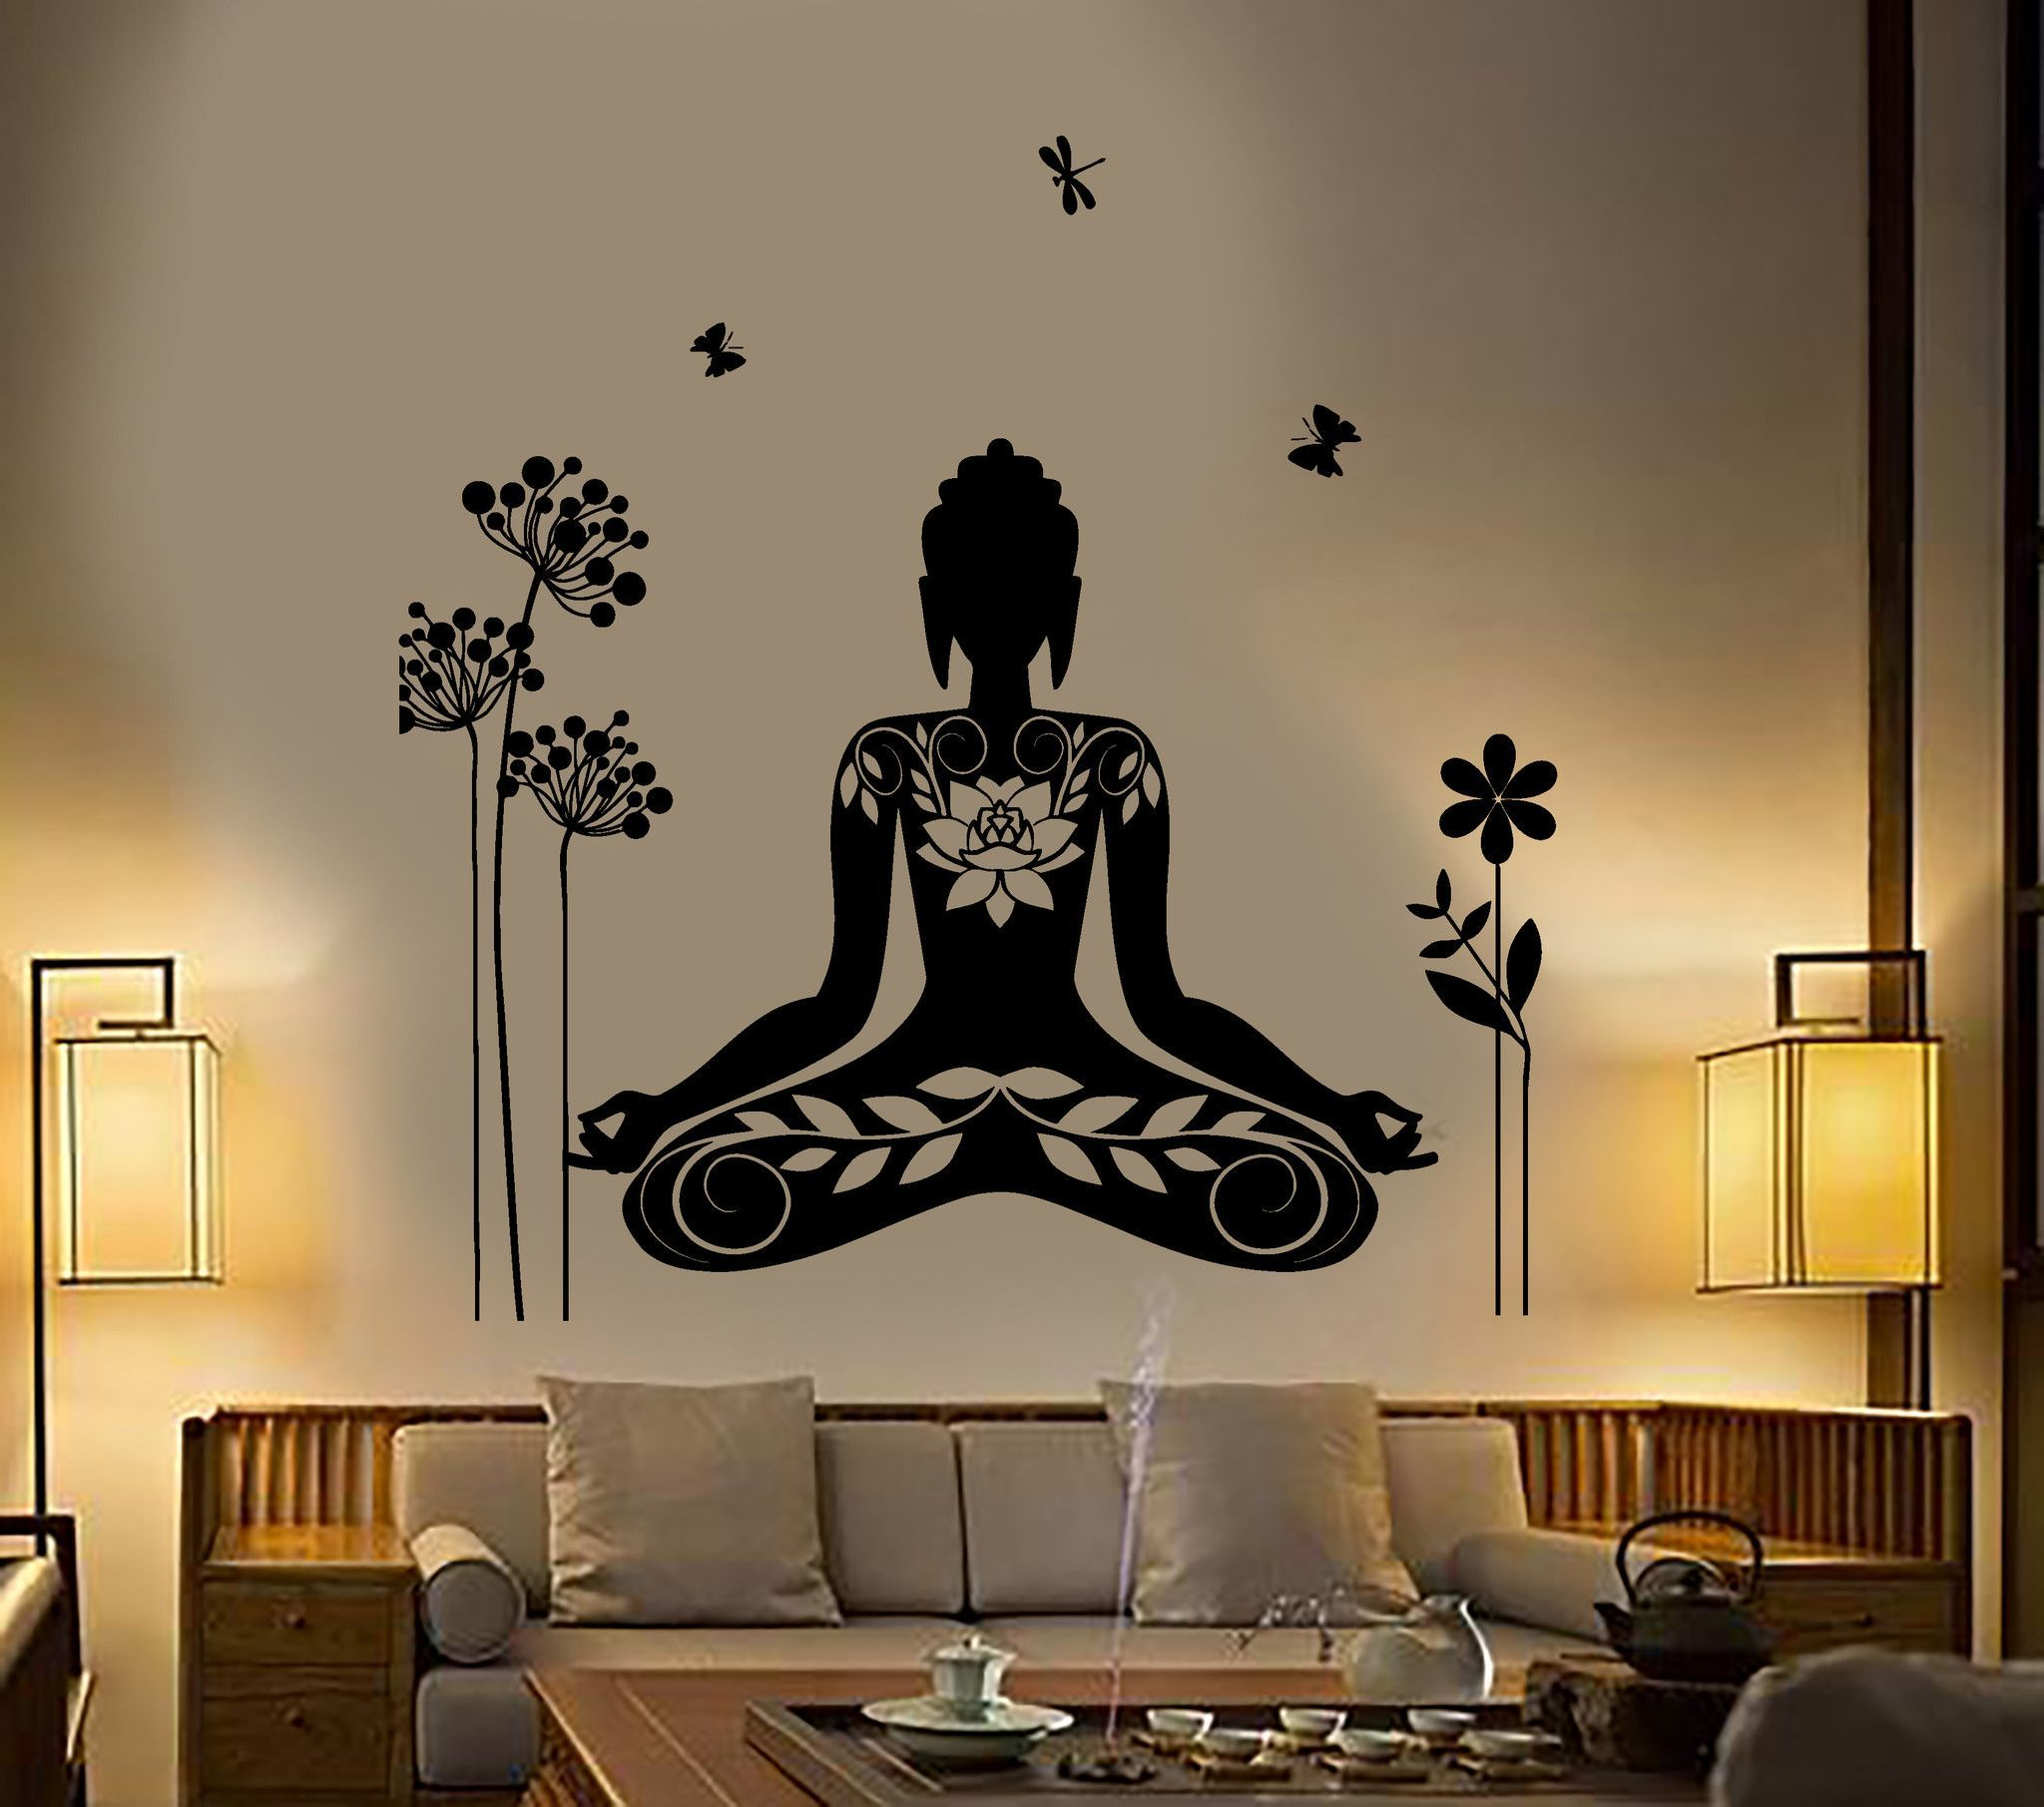 Buddha wall sticker meditation mantra flower butterfly yoga vinyl decal z2892